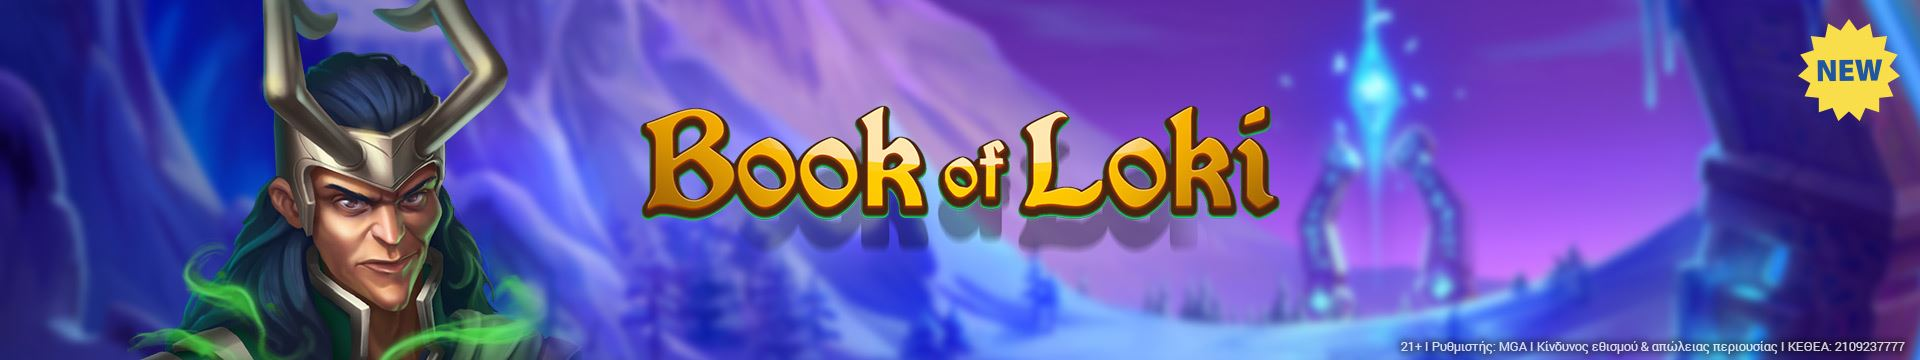 Book_of_Loki